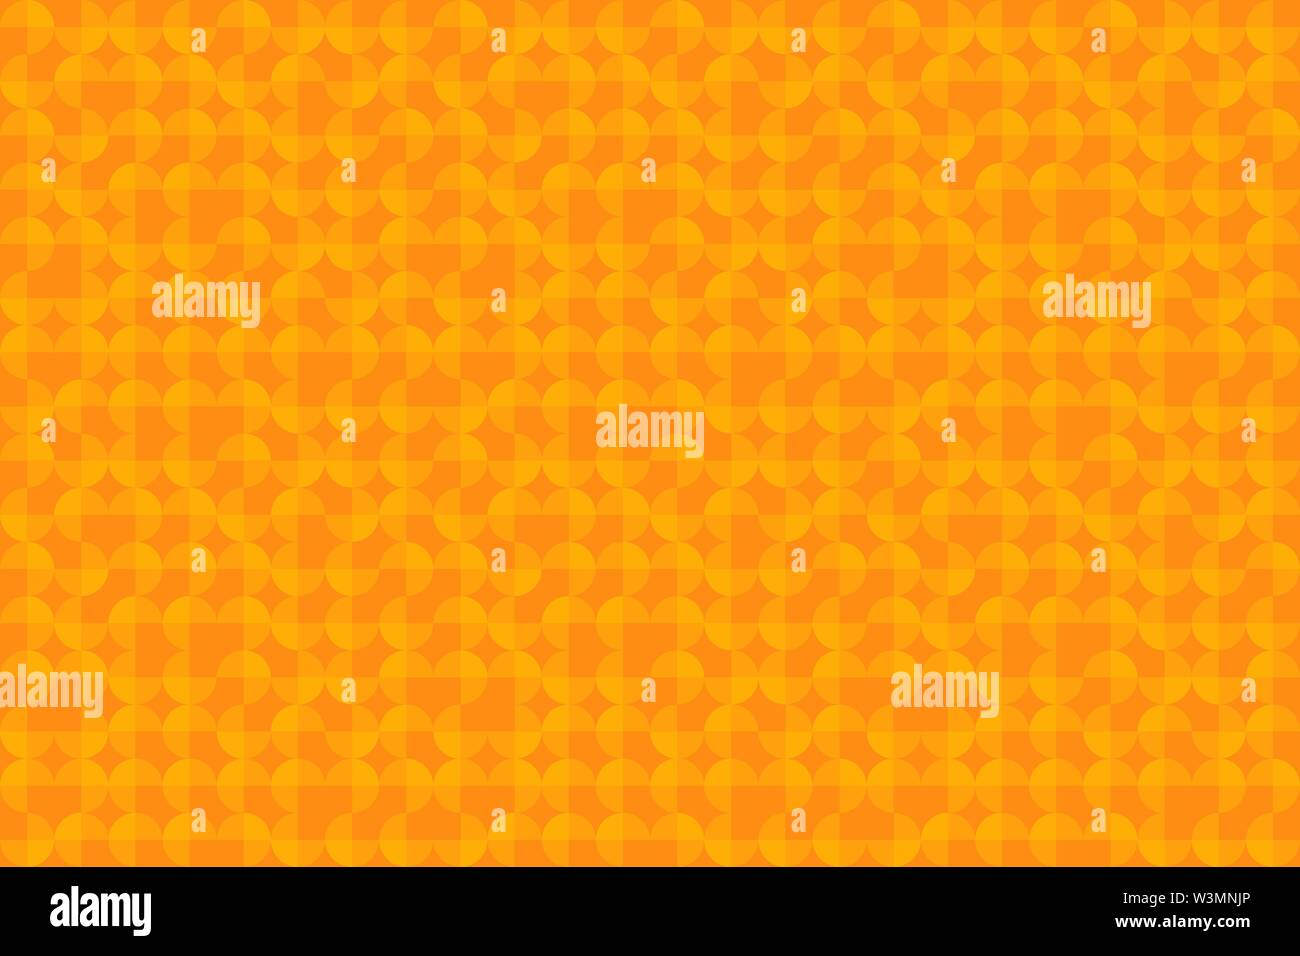 Seamless background. Abstract geometric pattern vector illustration - Stock Image